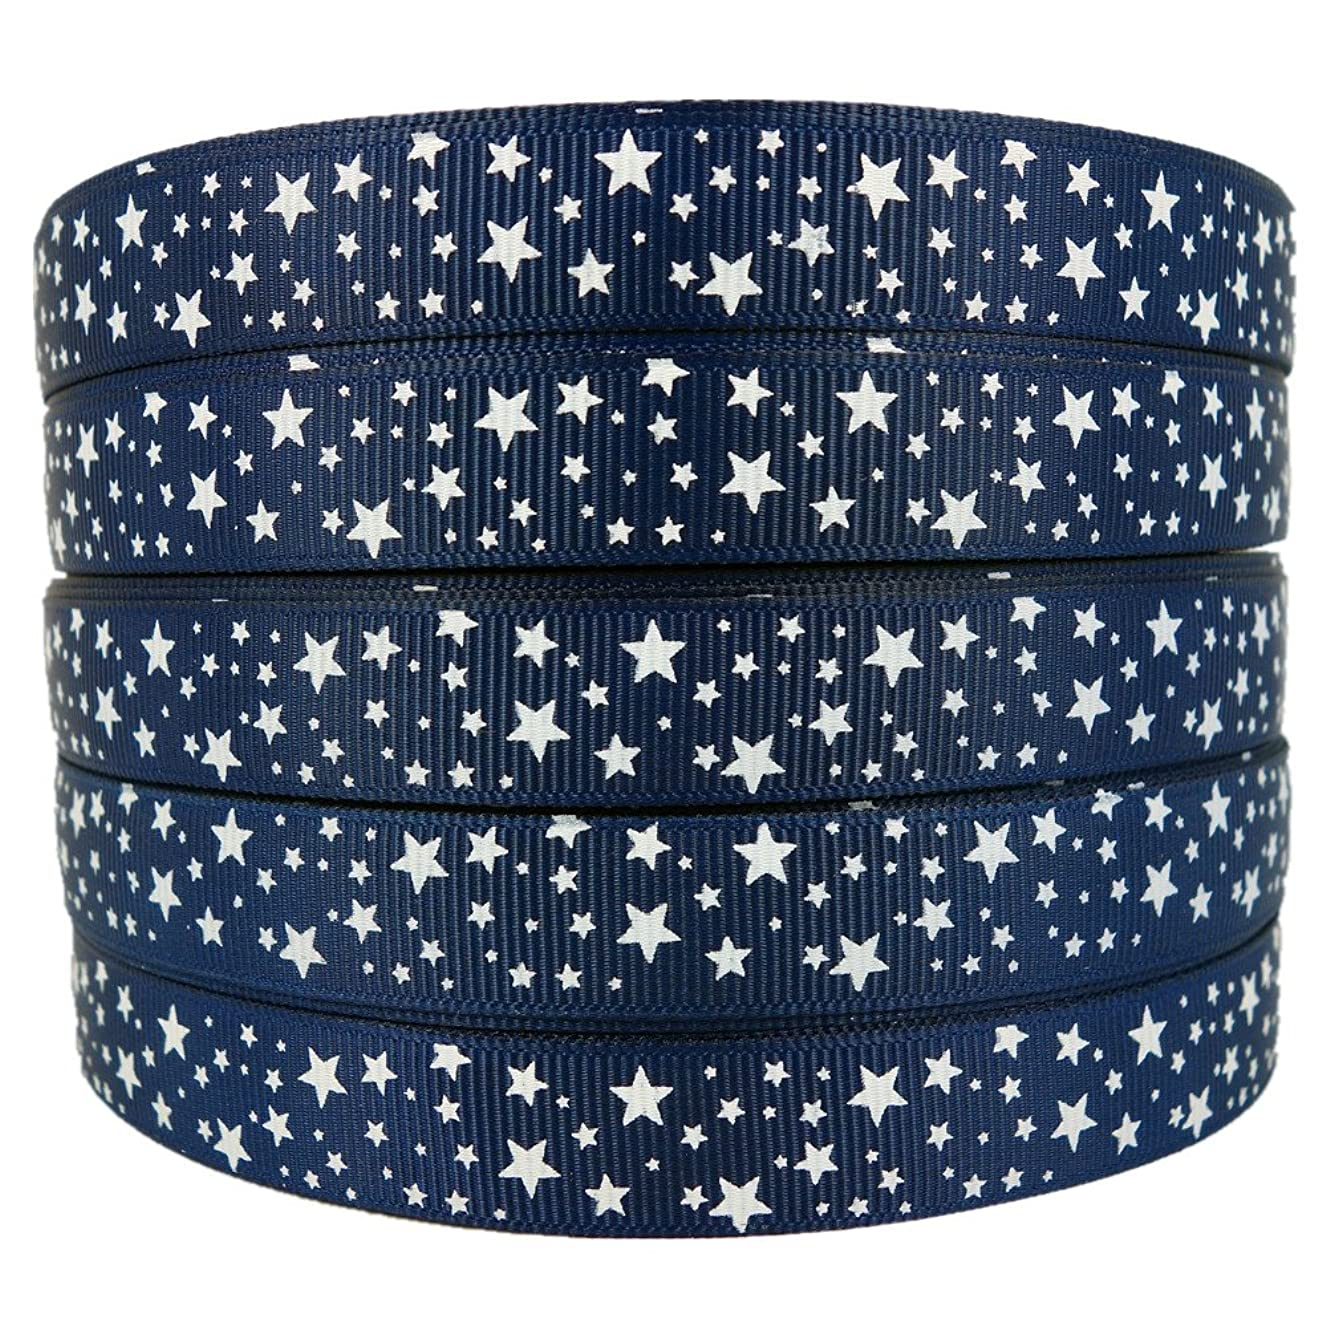 50 Yards 5/8 Inch White Star Printed Navy Grosgrain Ribbon Hairbow Sewing Craft Supplies Decorative